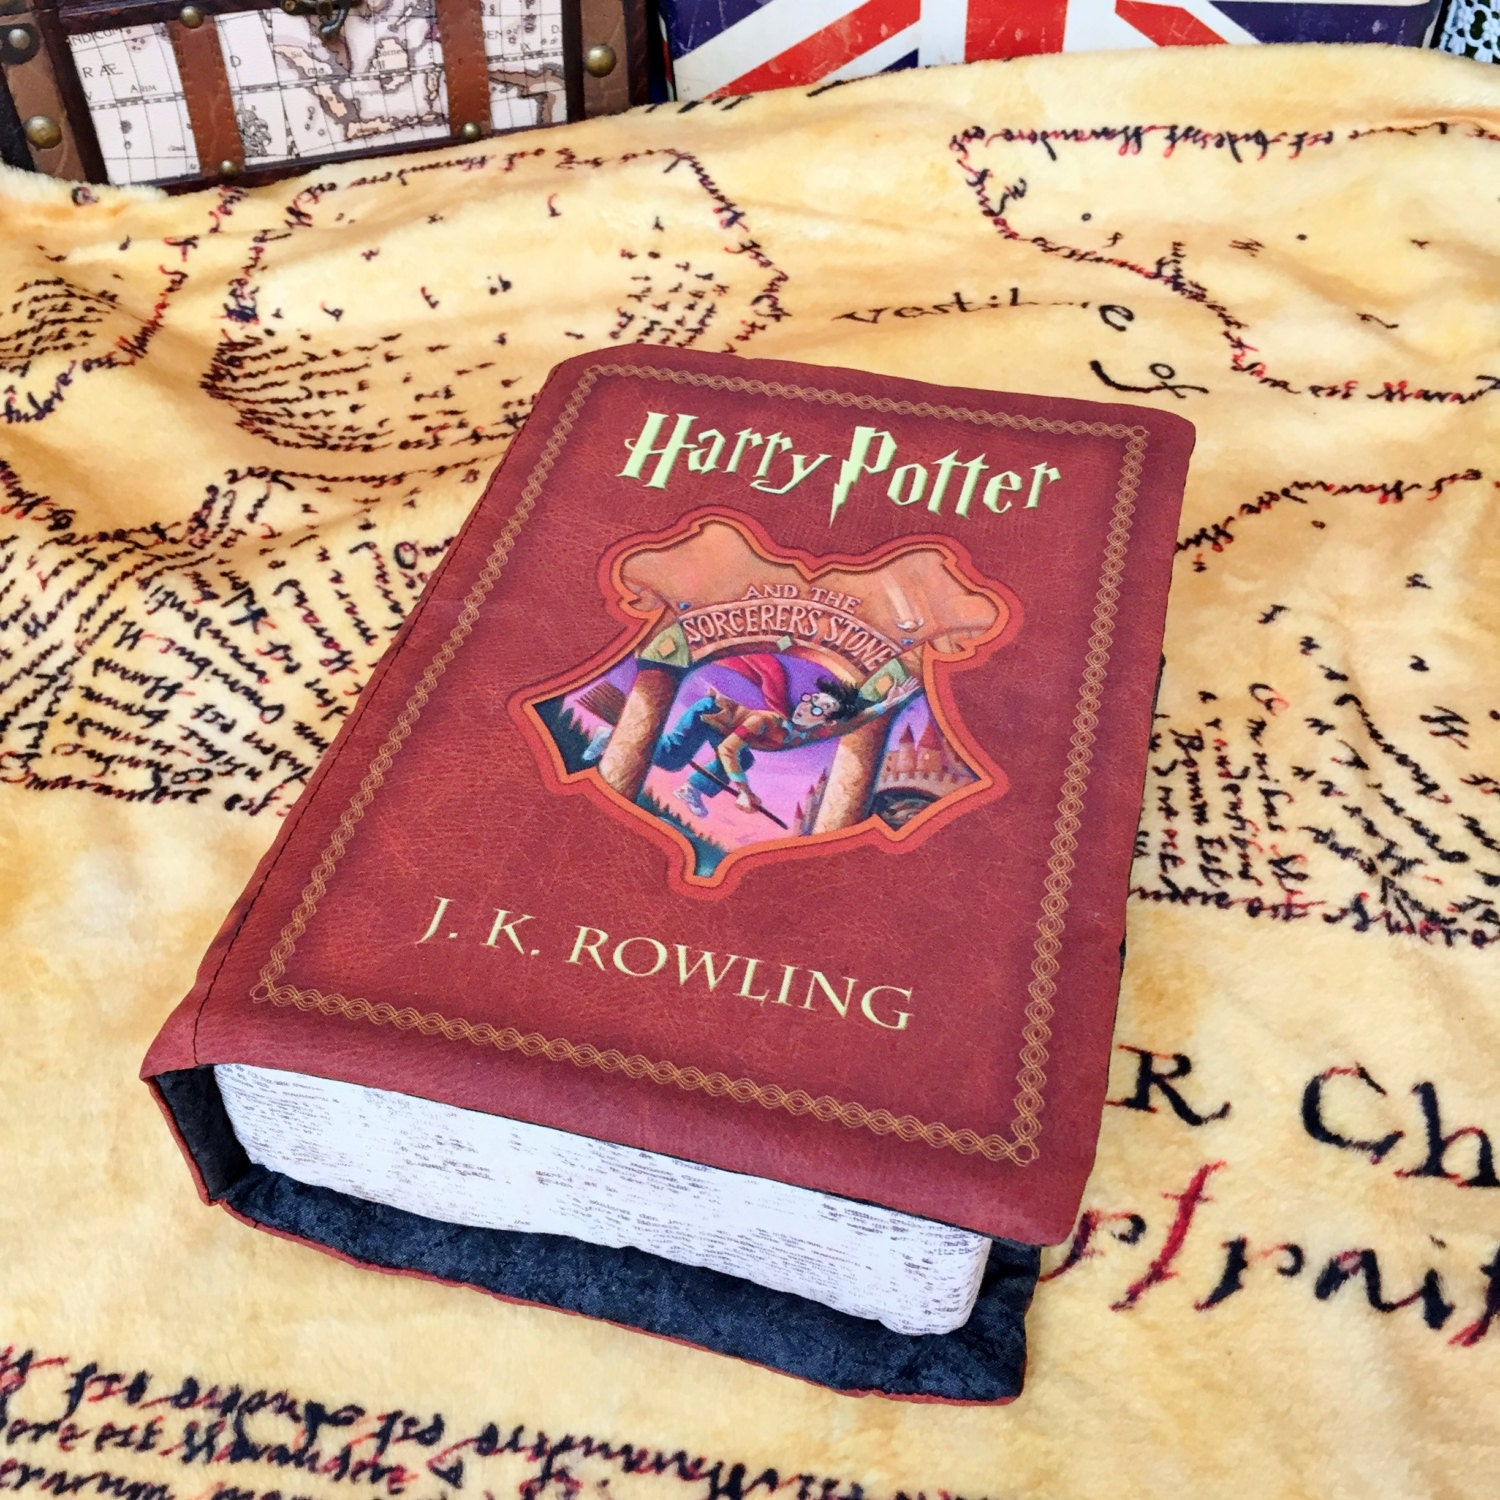 Harry Potter Book Cover Fabric : Harry potter book pillow by brassingtonhollow on etsy